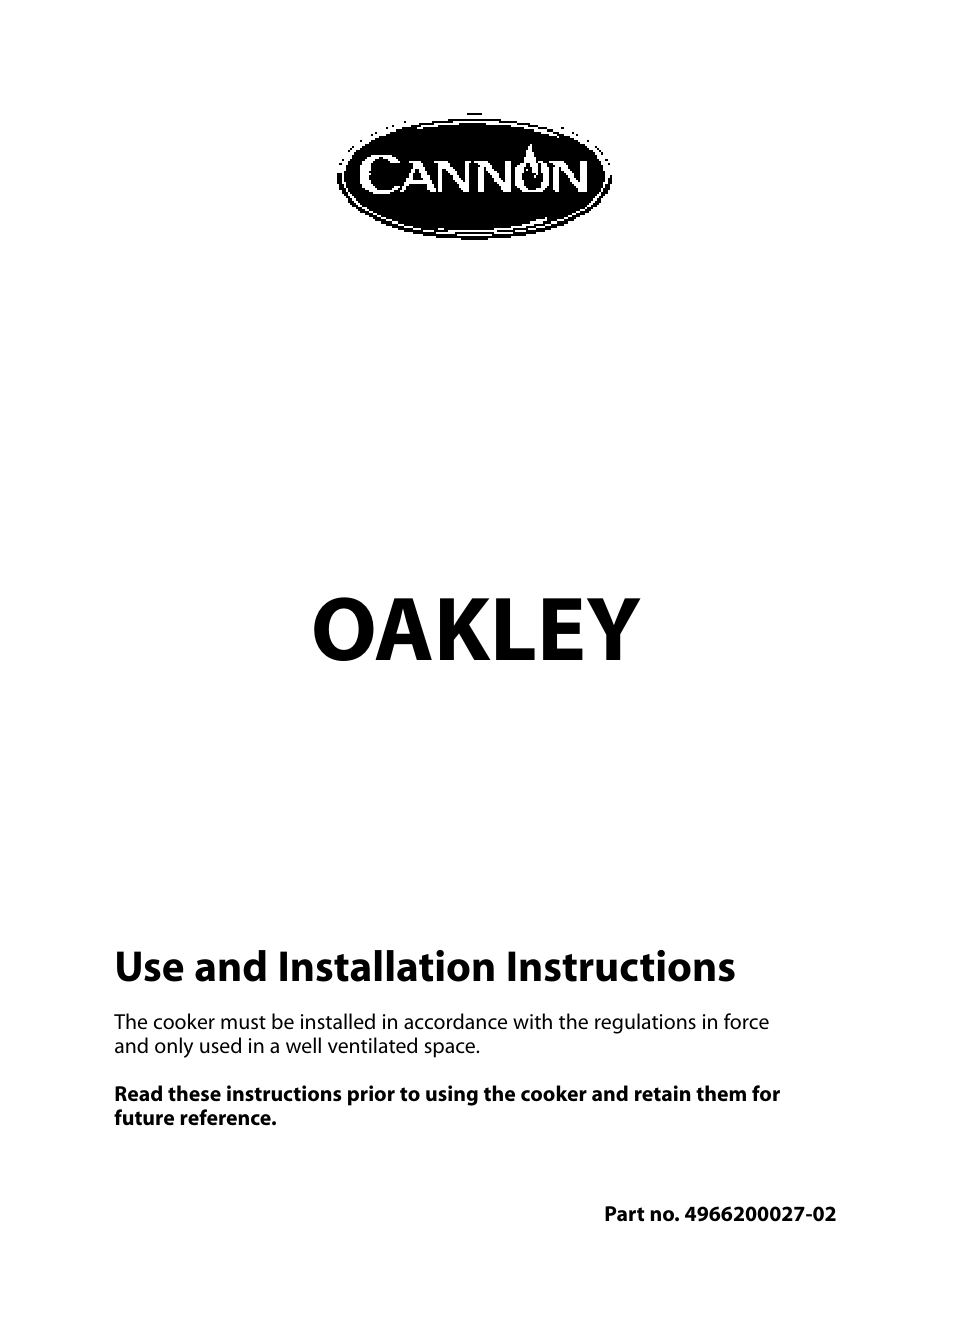 cannon oakley 10518g user manual 28 pages also for oakley rh manualsdir com Leisure Cookers Beko Cookers